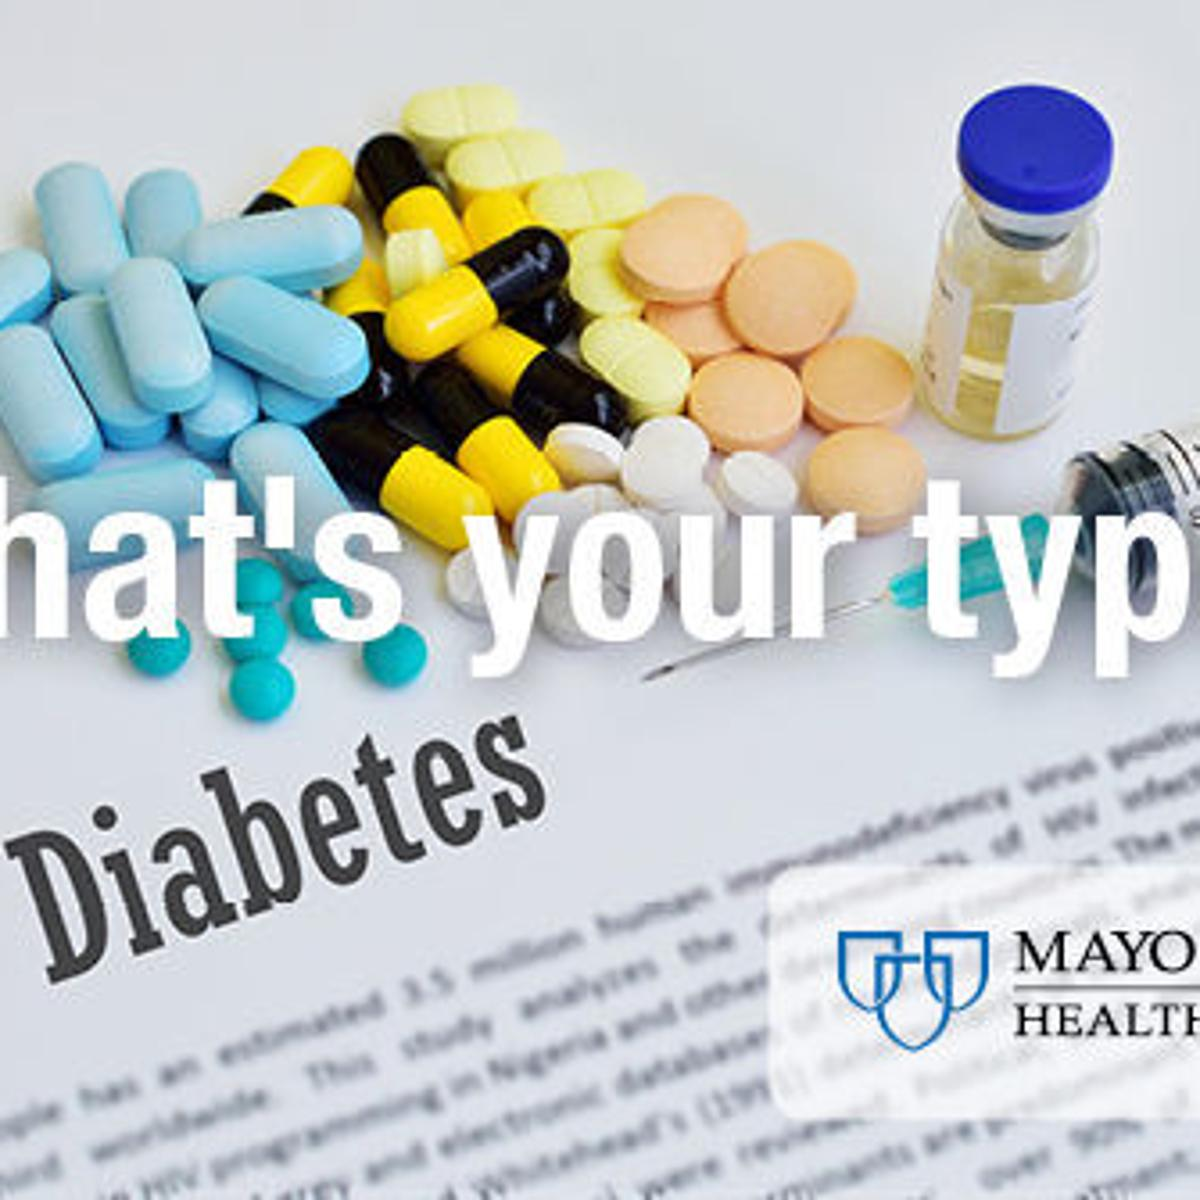 Mayo Clinic Health System: Identifying types of diabetes